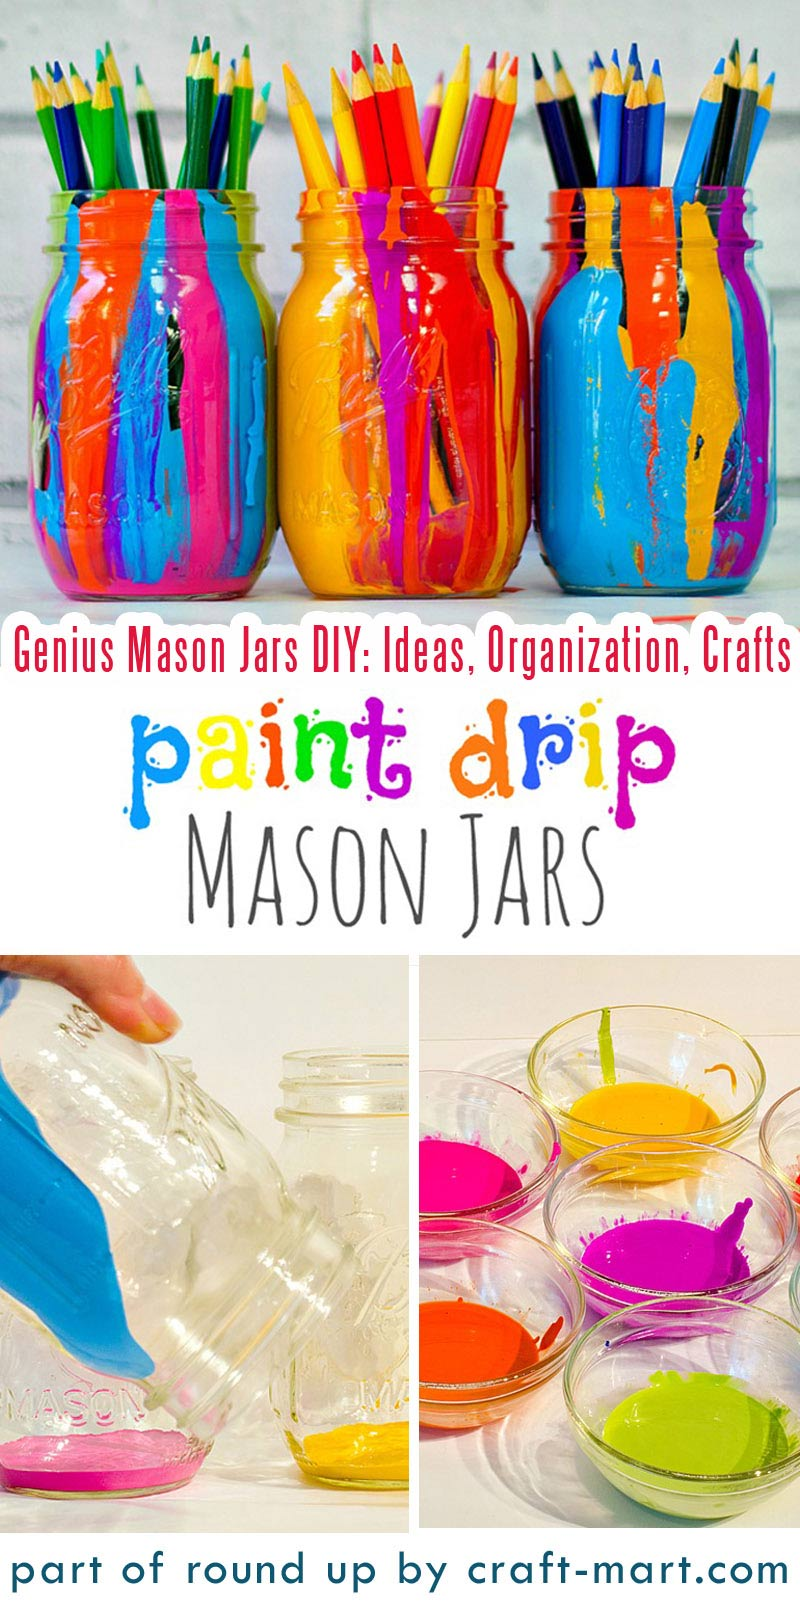 Simply Genius Mason Jars DIY: Ideas, Organization, Crafts collection by craft-mart.com - Colorful Paint Drip Mason Jars #masonjars #masonjarsdiy #diyprojects #masonjarsorganization